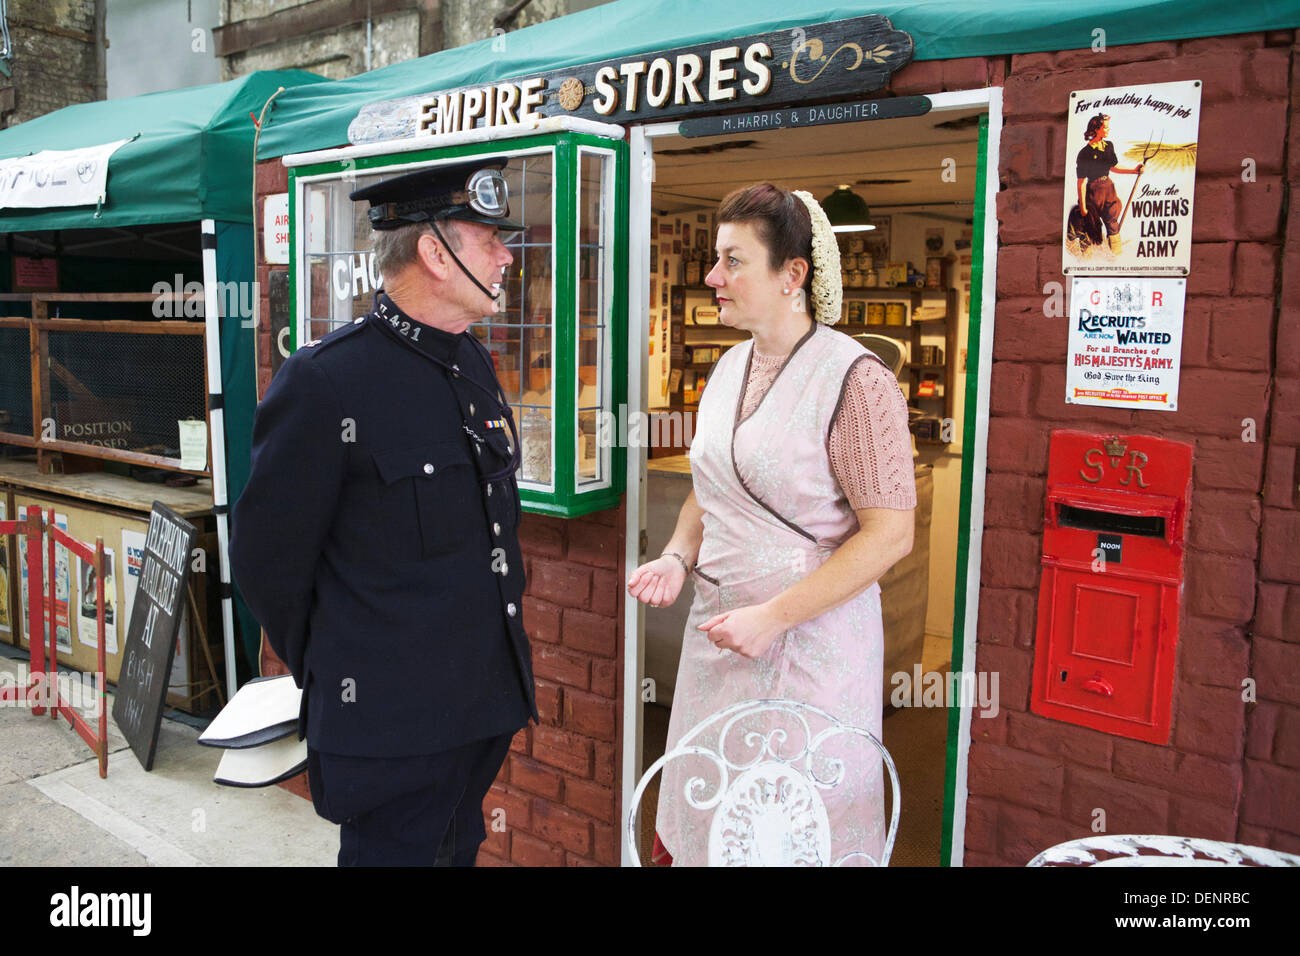 Chatham, UK. 21st Sep, 2013. Salute to the 40's - Britain's 1940's Home Front Event at The Historic Dockyard Chatham. Policeman and shop owner in traditional 1940' clothing. - Stock Image